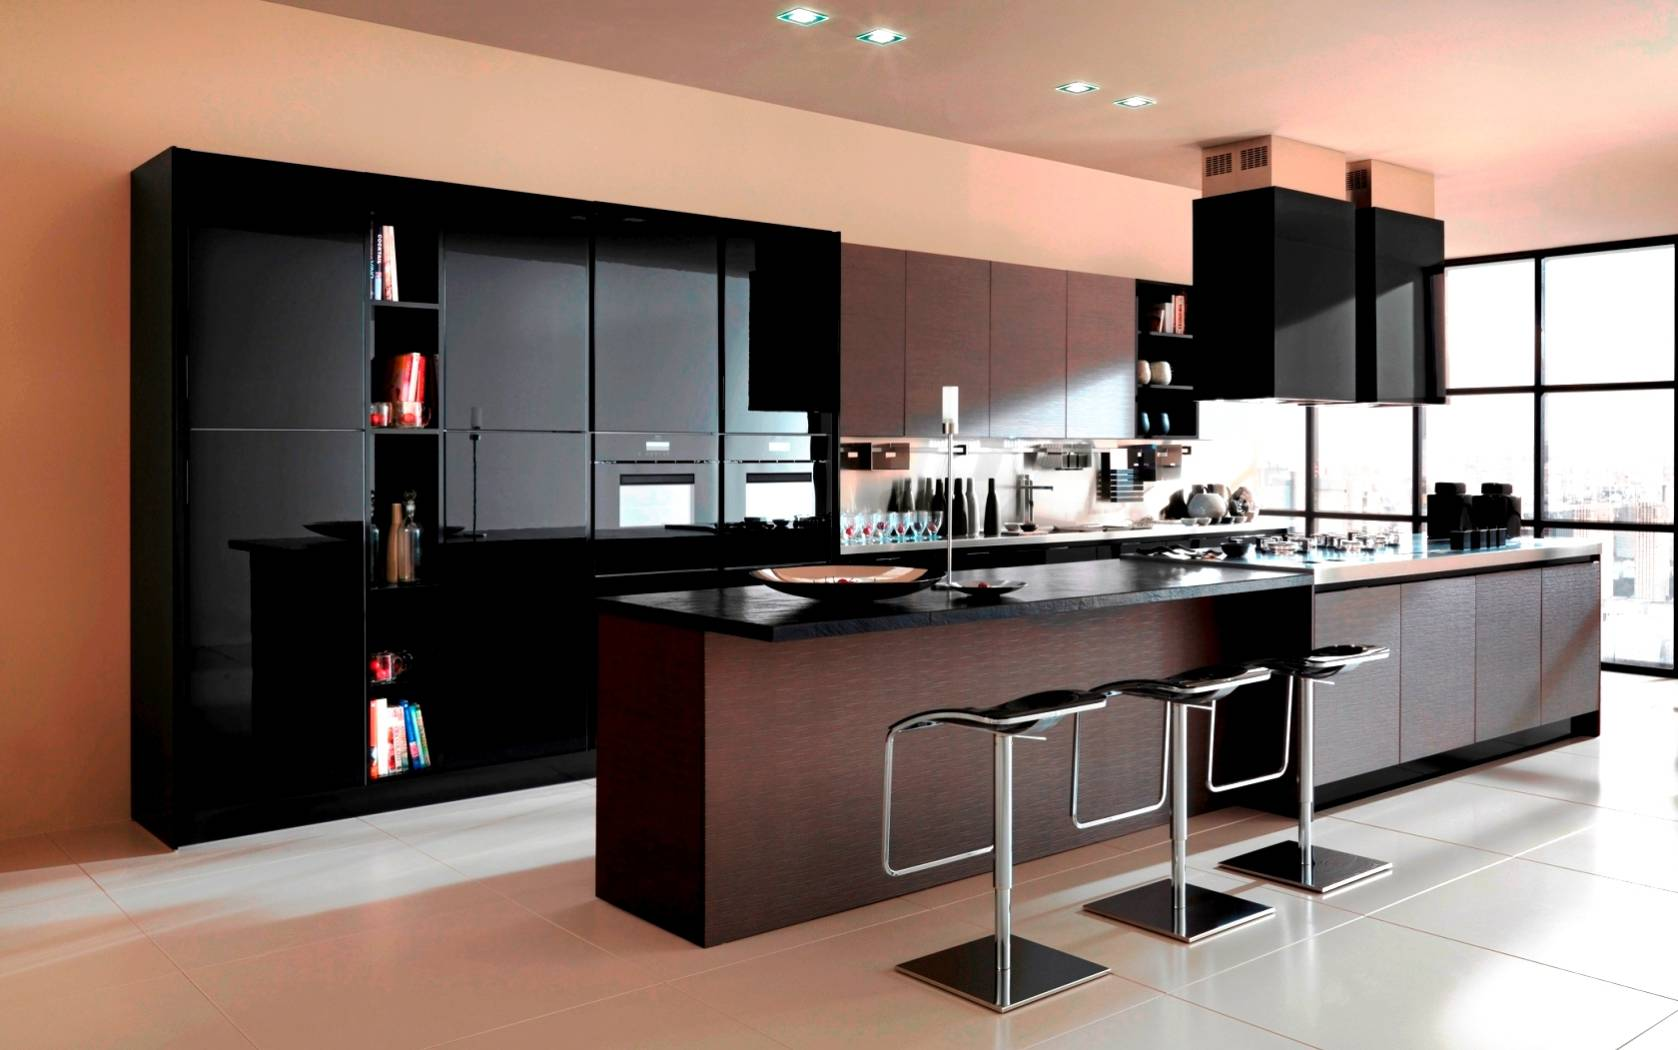 Modular kitchen cabinets 82 modular cabinet stainless for Stainless steel modular kitchen designs